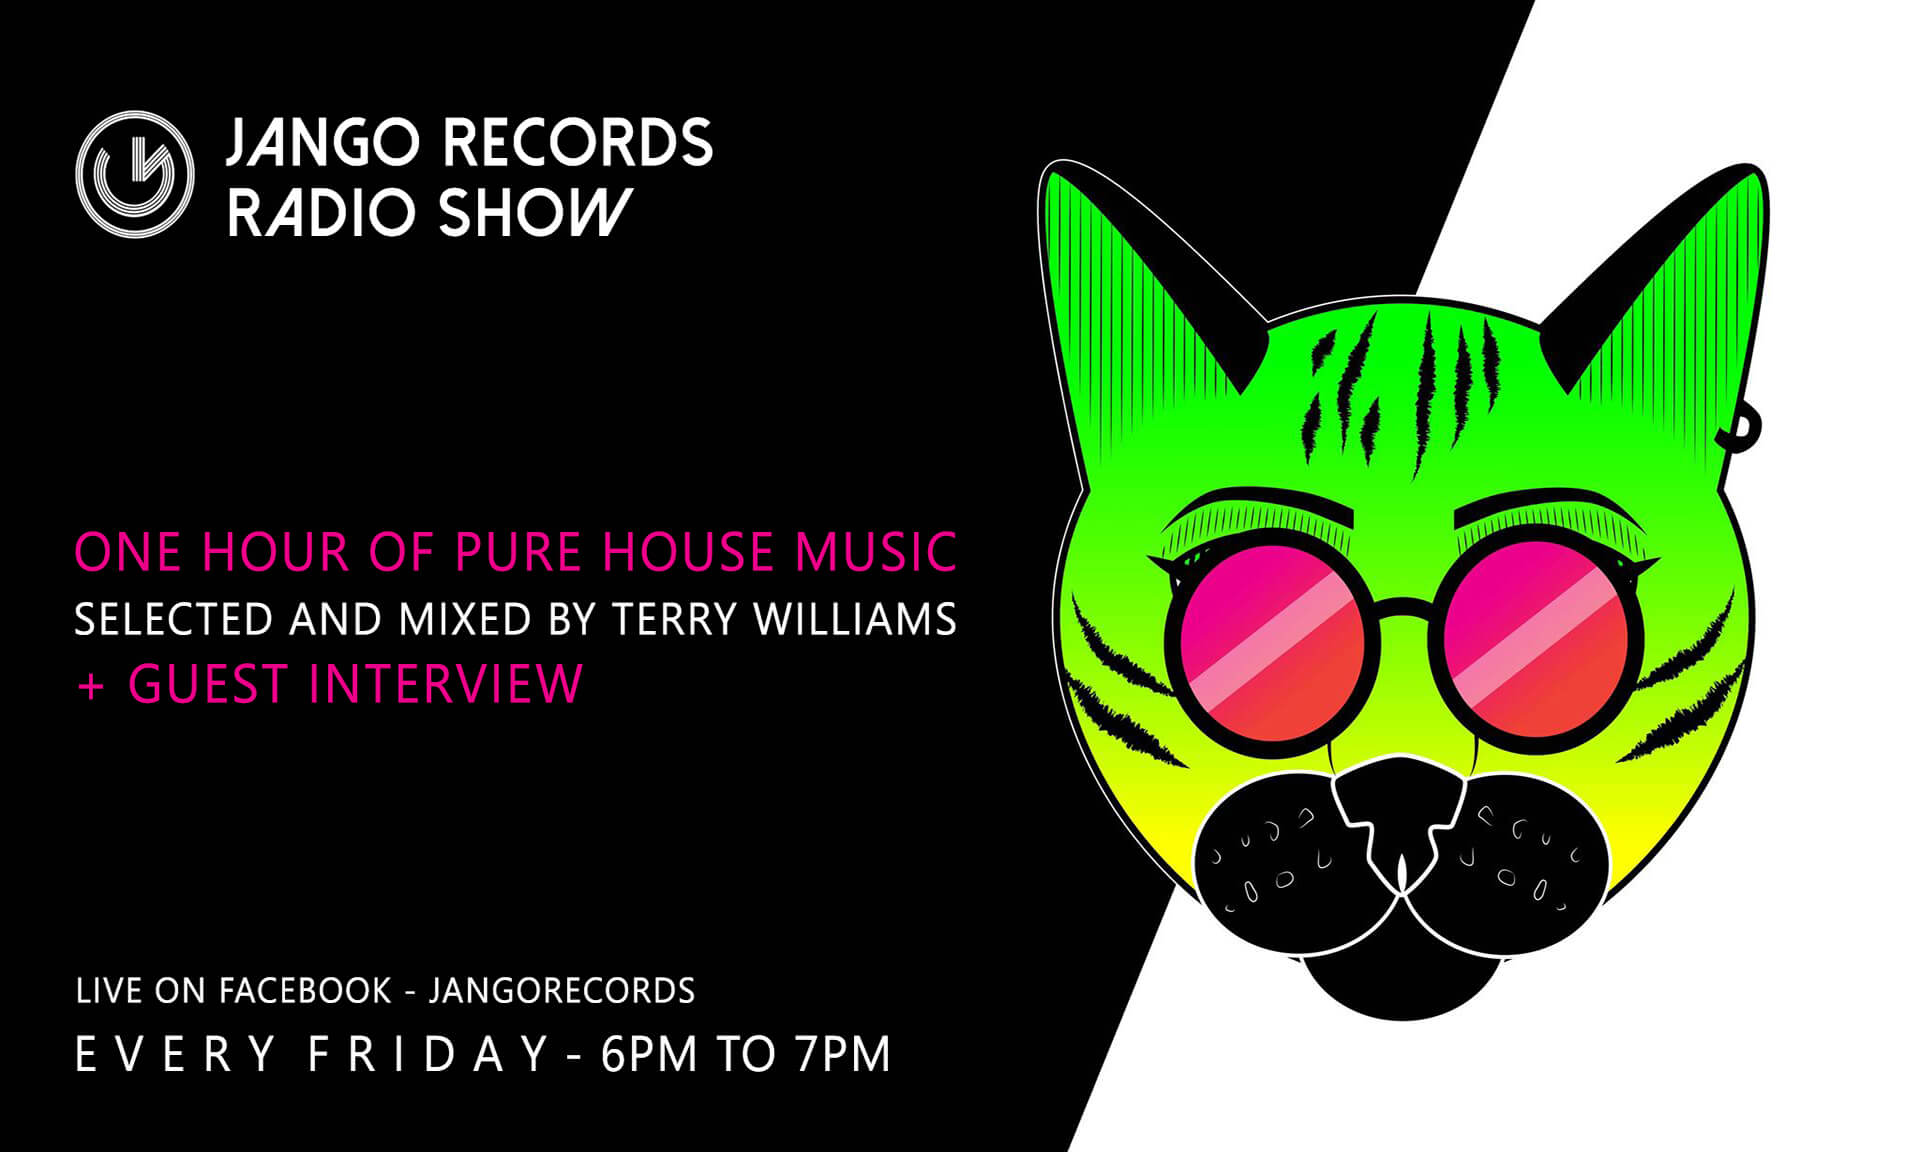 Jango Records weekly Radio Show